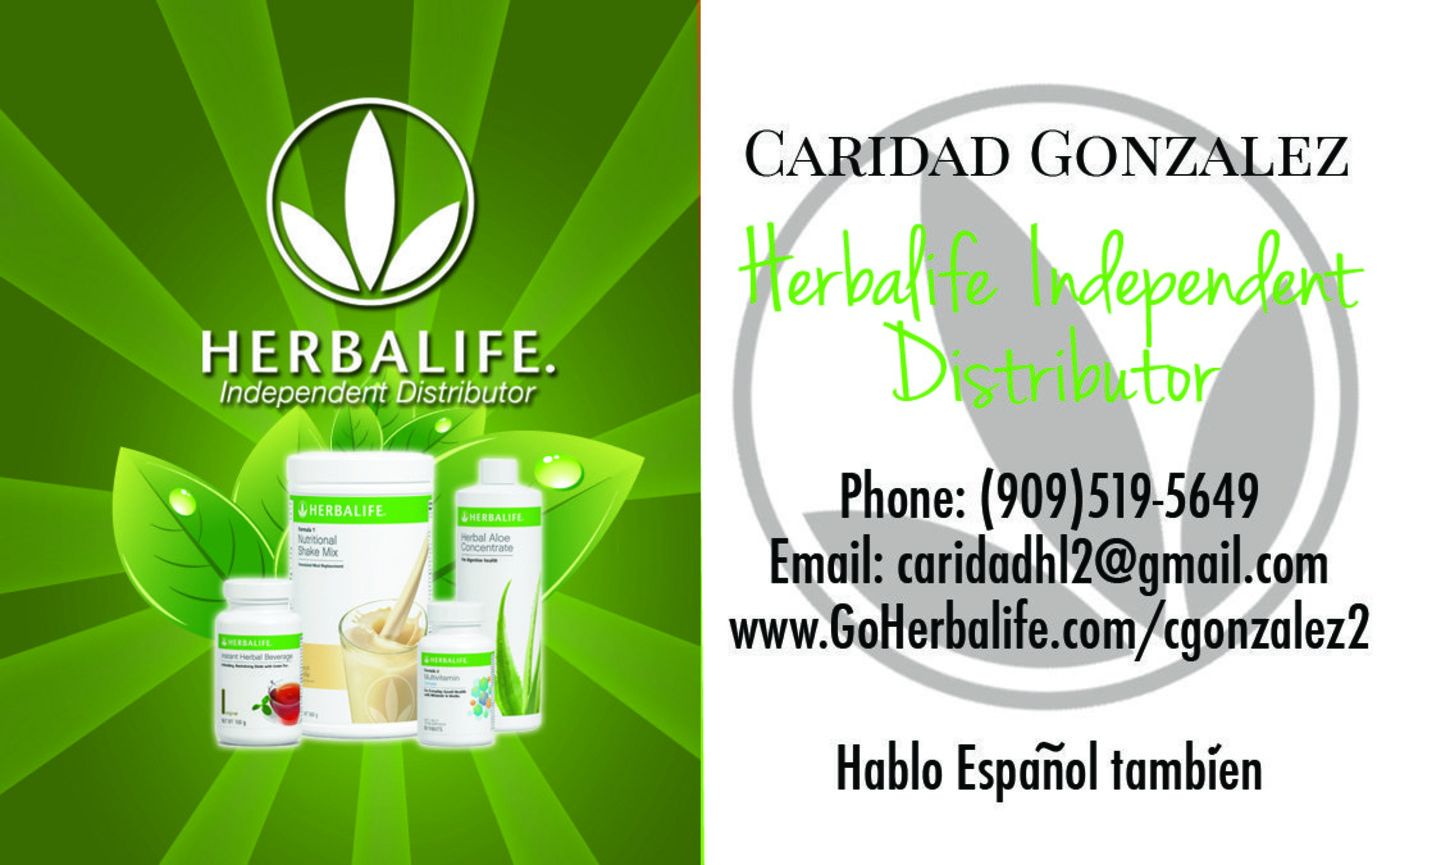 Herbalife Business Cards · Kelly Servis · AwesomeWeb